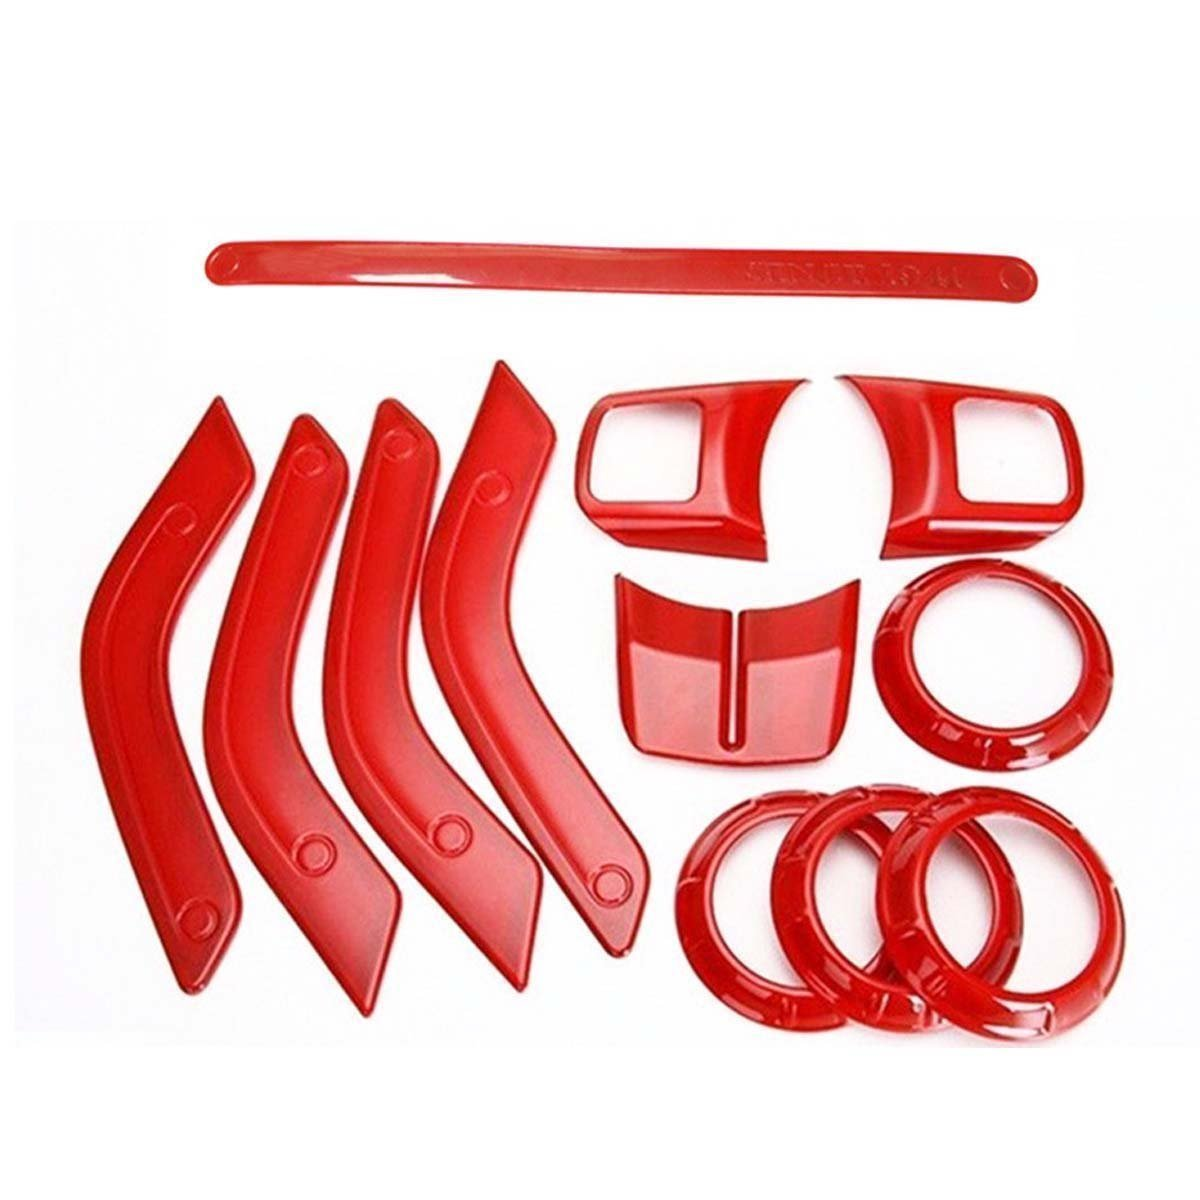 Full Set Interior Decoration Trim Kit for 11-17 JK 4 Door